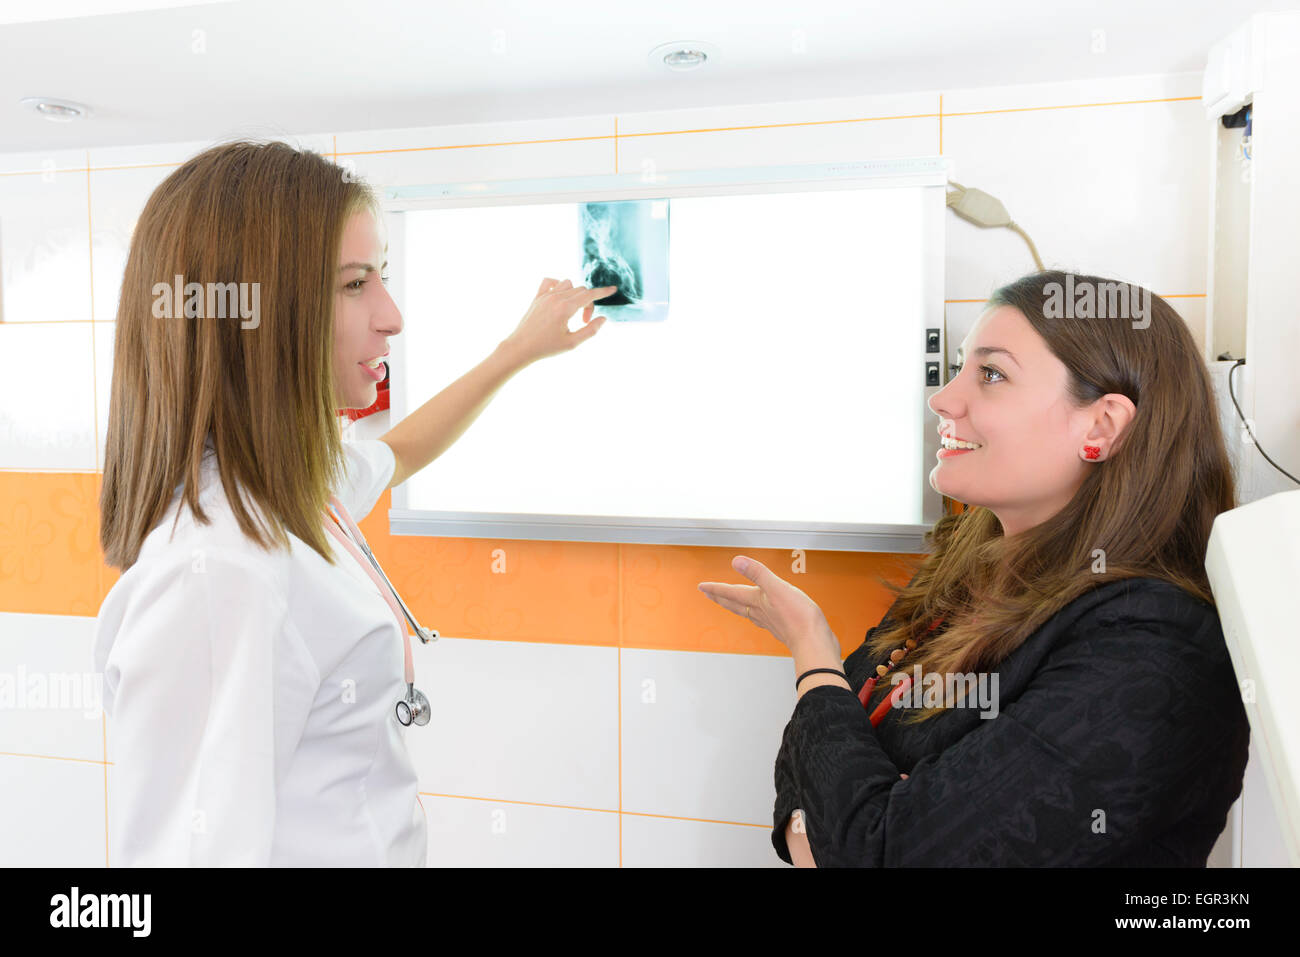 Patient looking with doctor at x-ray image in a hospital - Stock Image